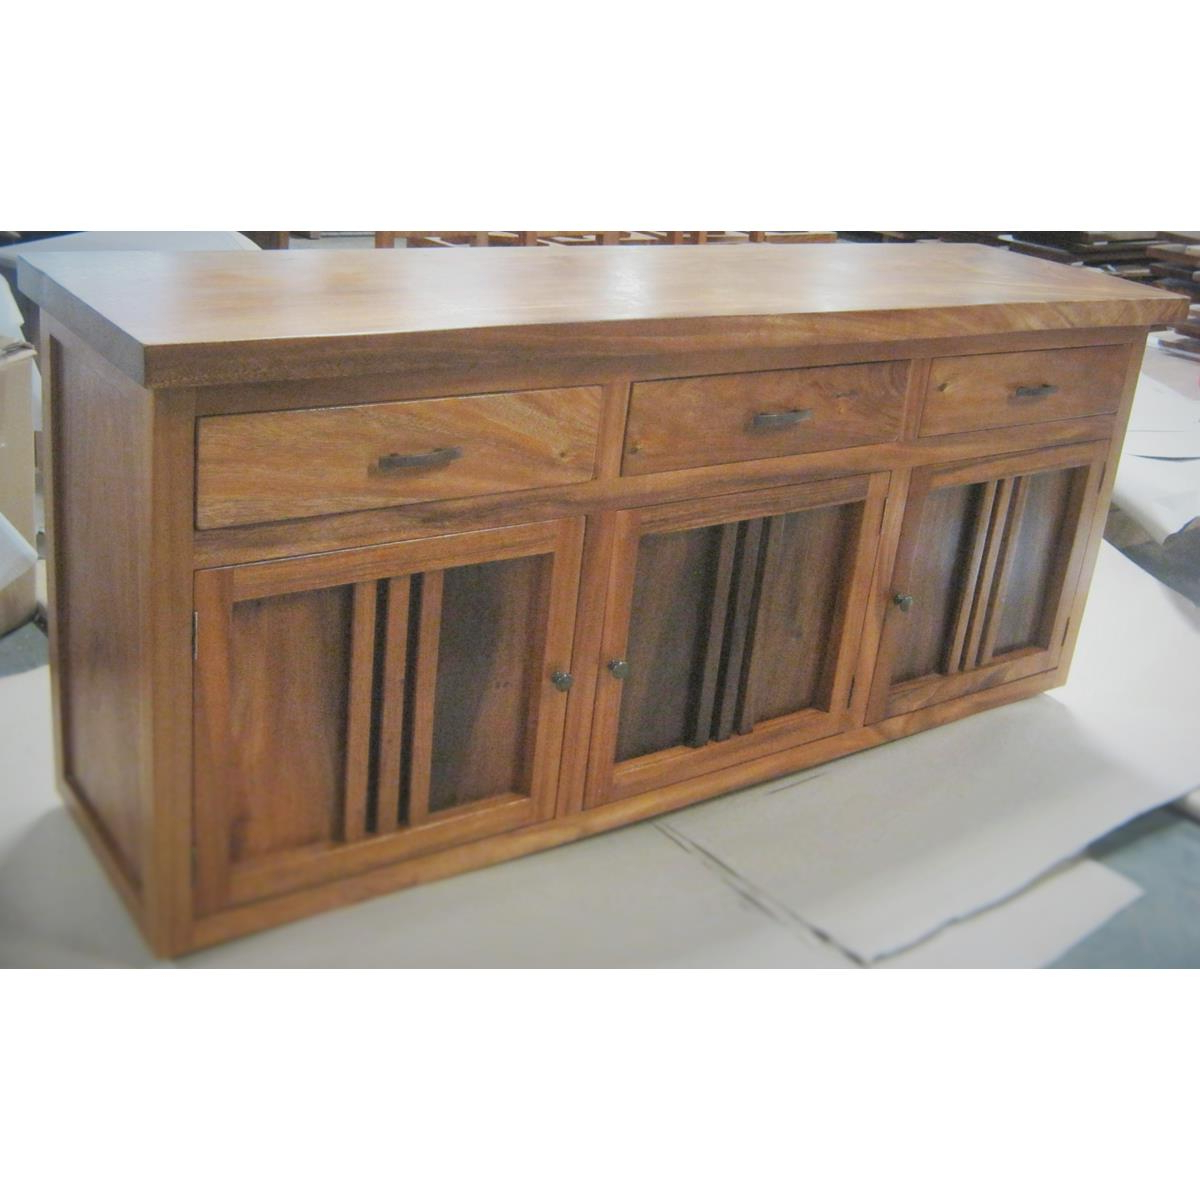 Newest Natural Oak Wood 78 Inch Sideboards With Monsoon Wood   Dining Buffet At Elementfinefurniture Hand Made (Gallery 4 of 20)